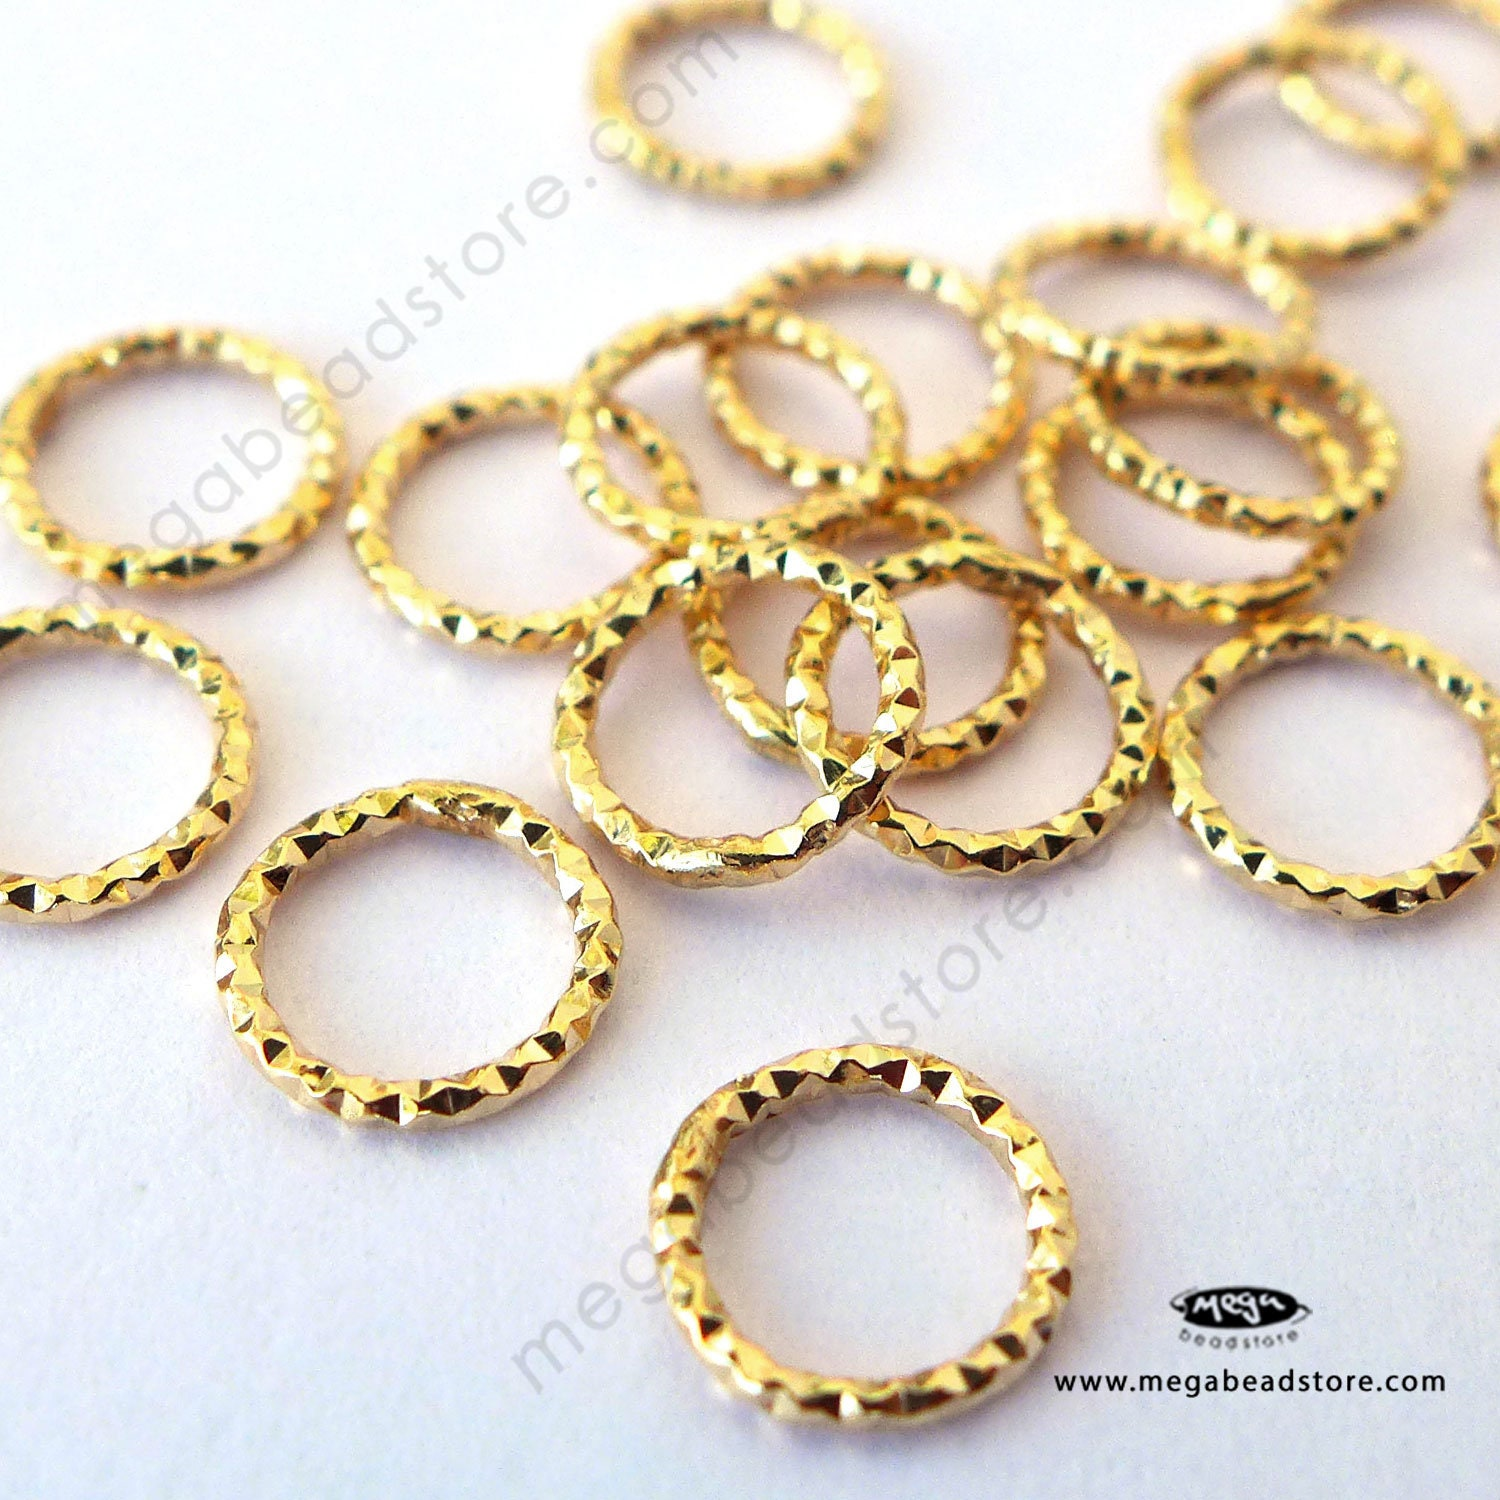 80 New Charms Crimp Beads Covers 5mm Gold Dull Silver Bronze Plated Connectors